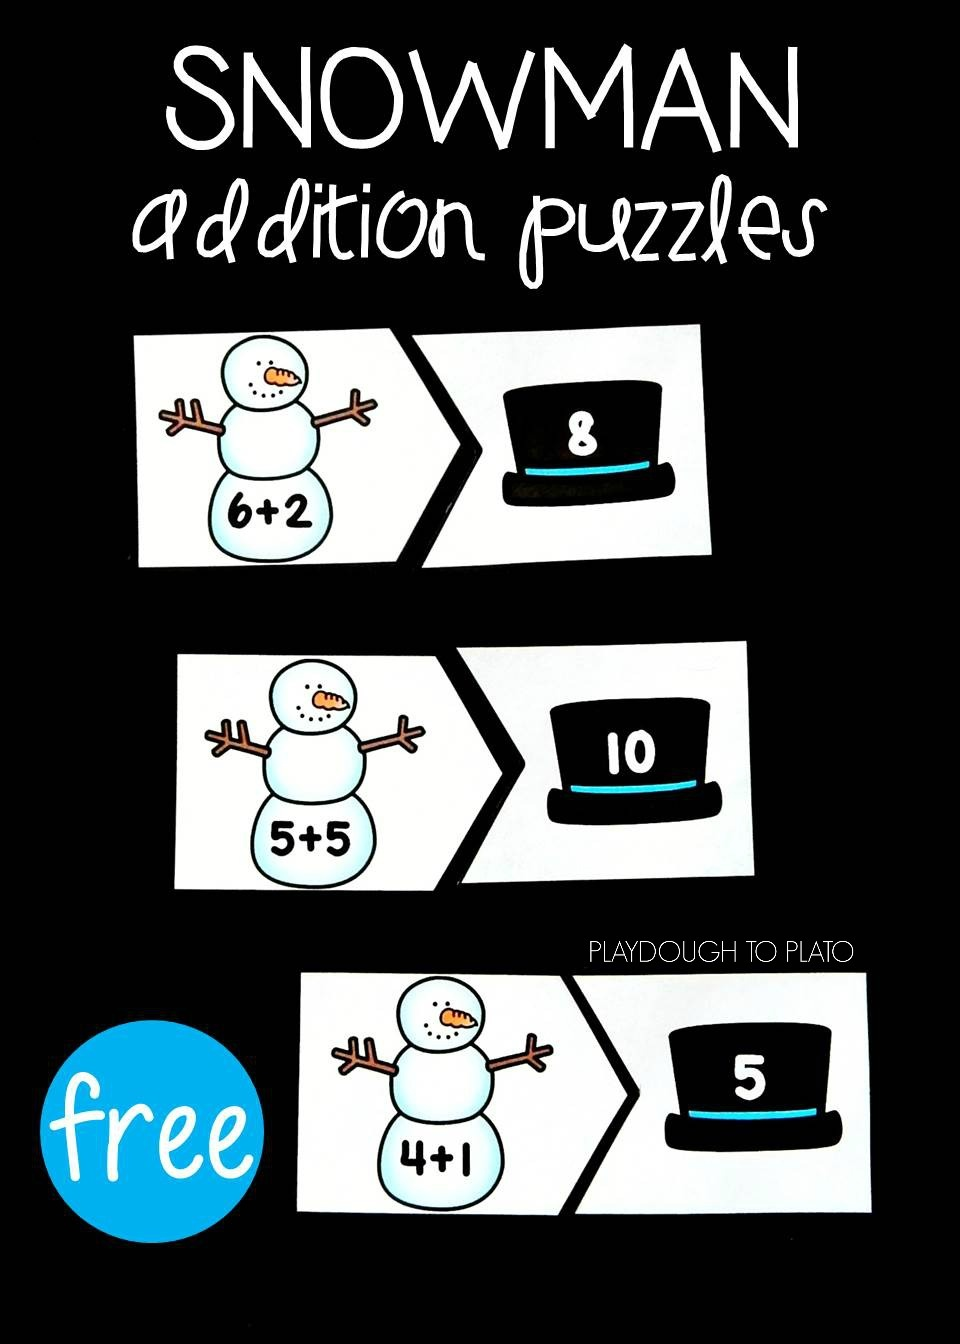 Snowman Addition Puzzles